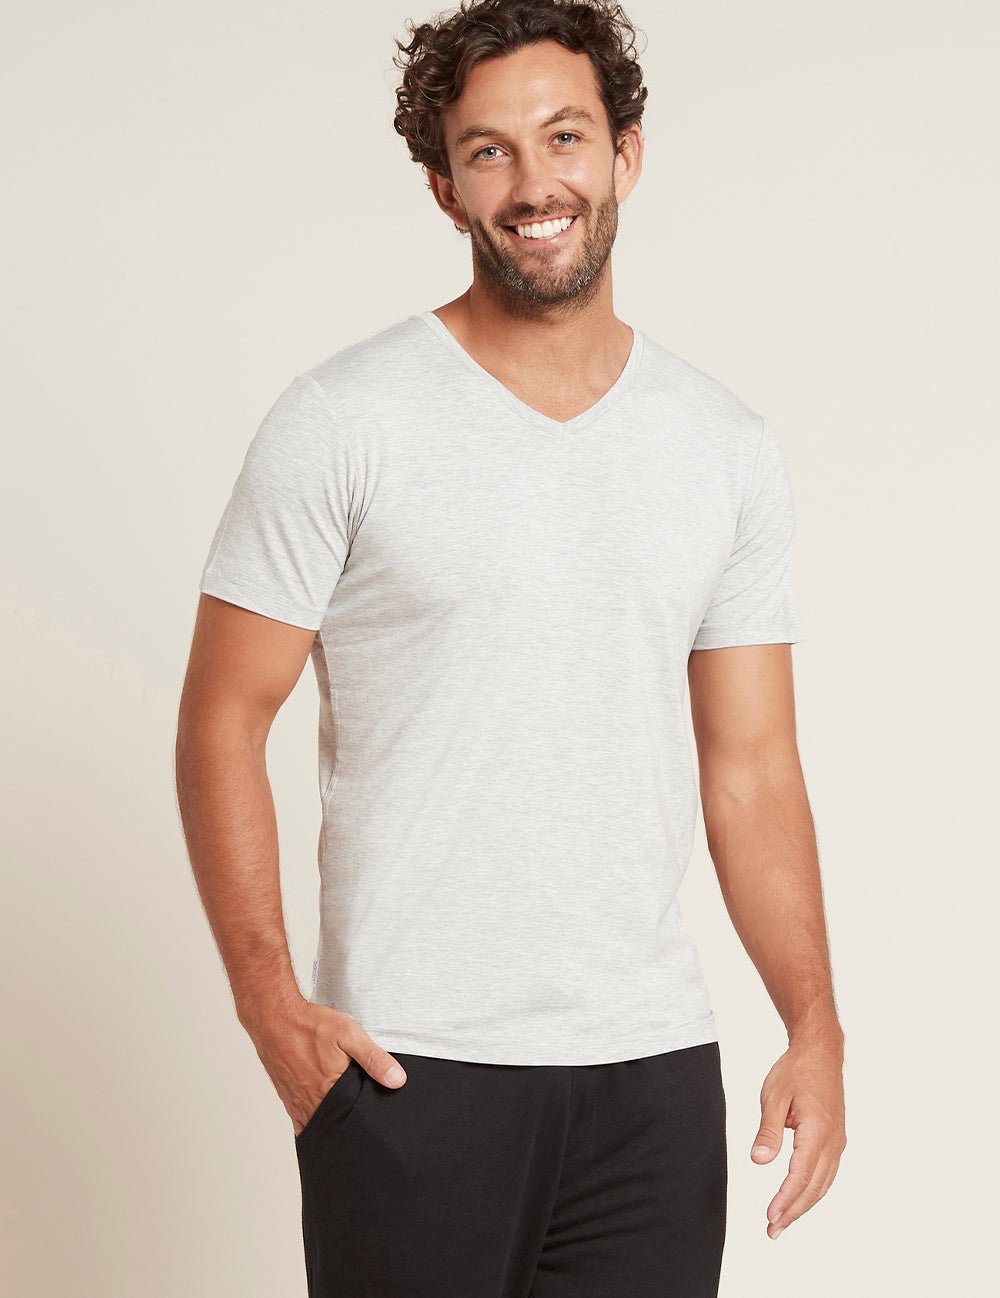 Men's V-Neck T-Shirt - Light Grey Marl/S